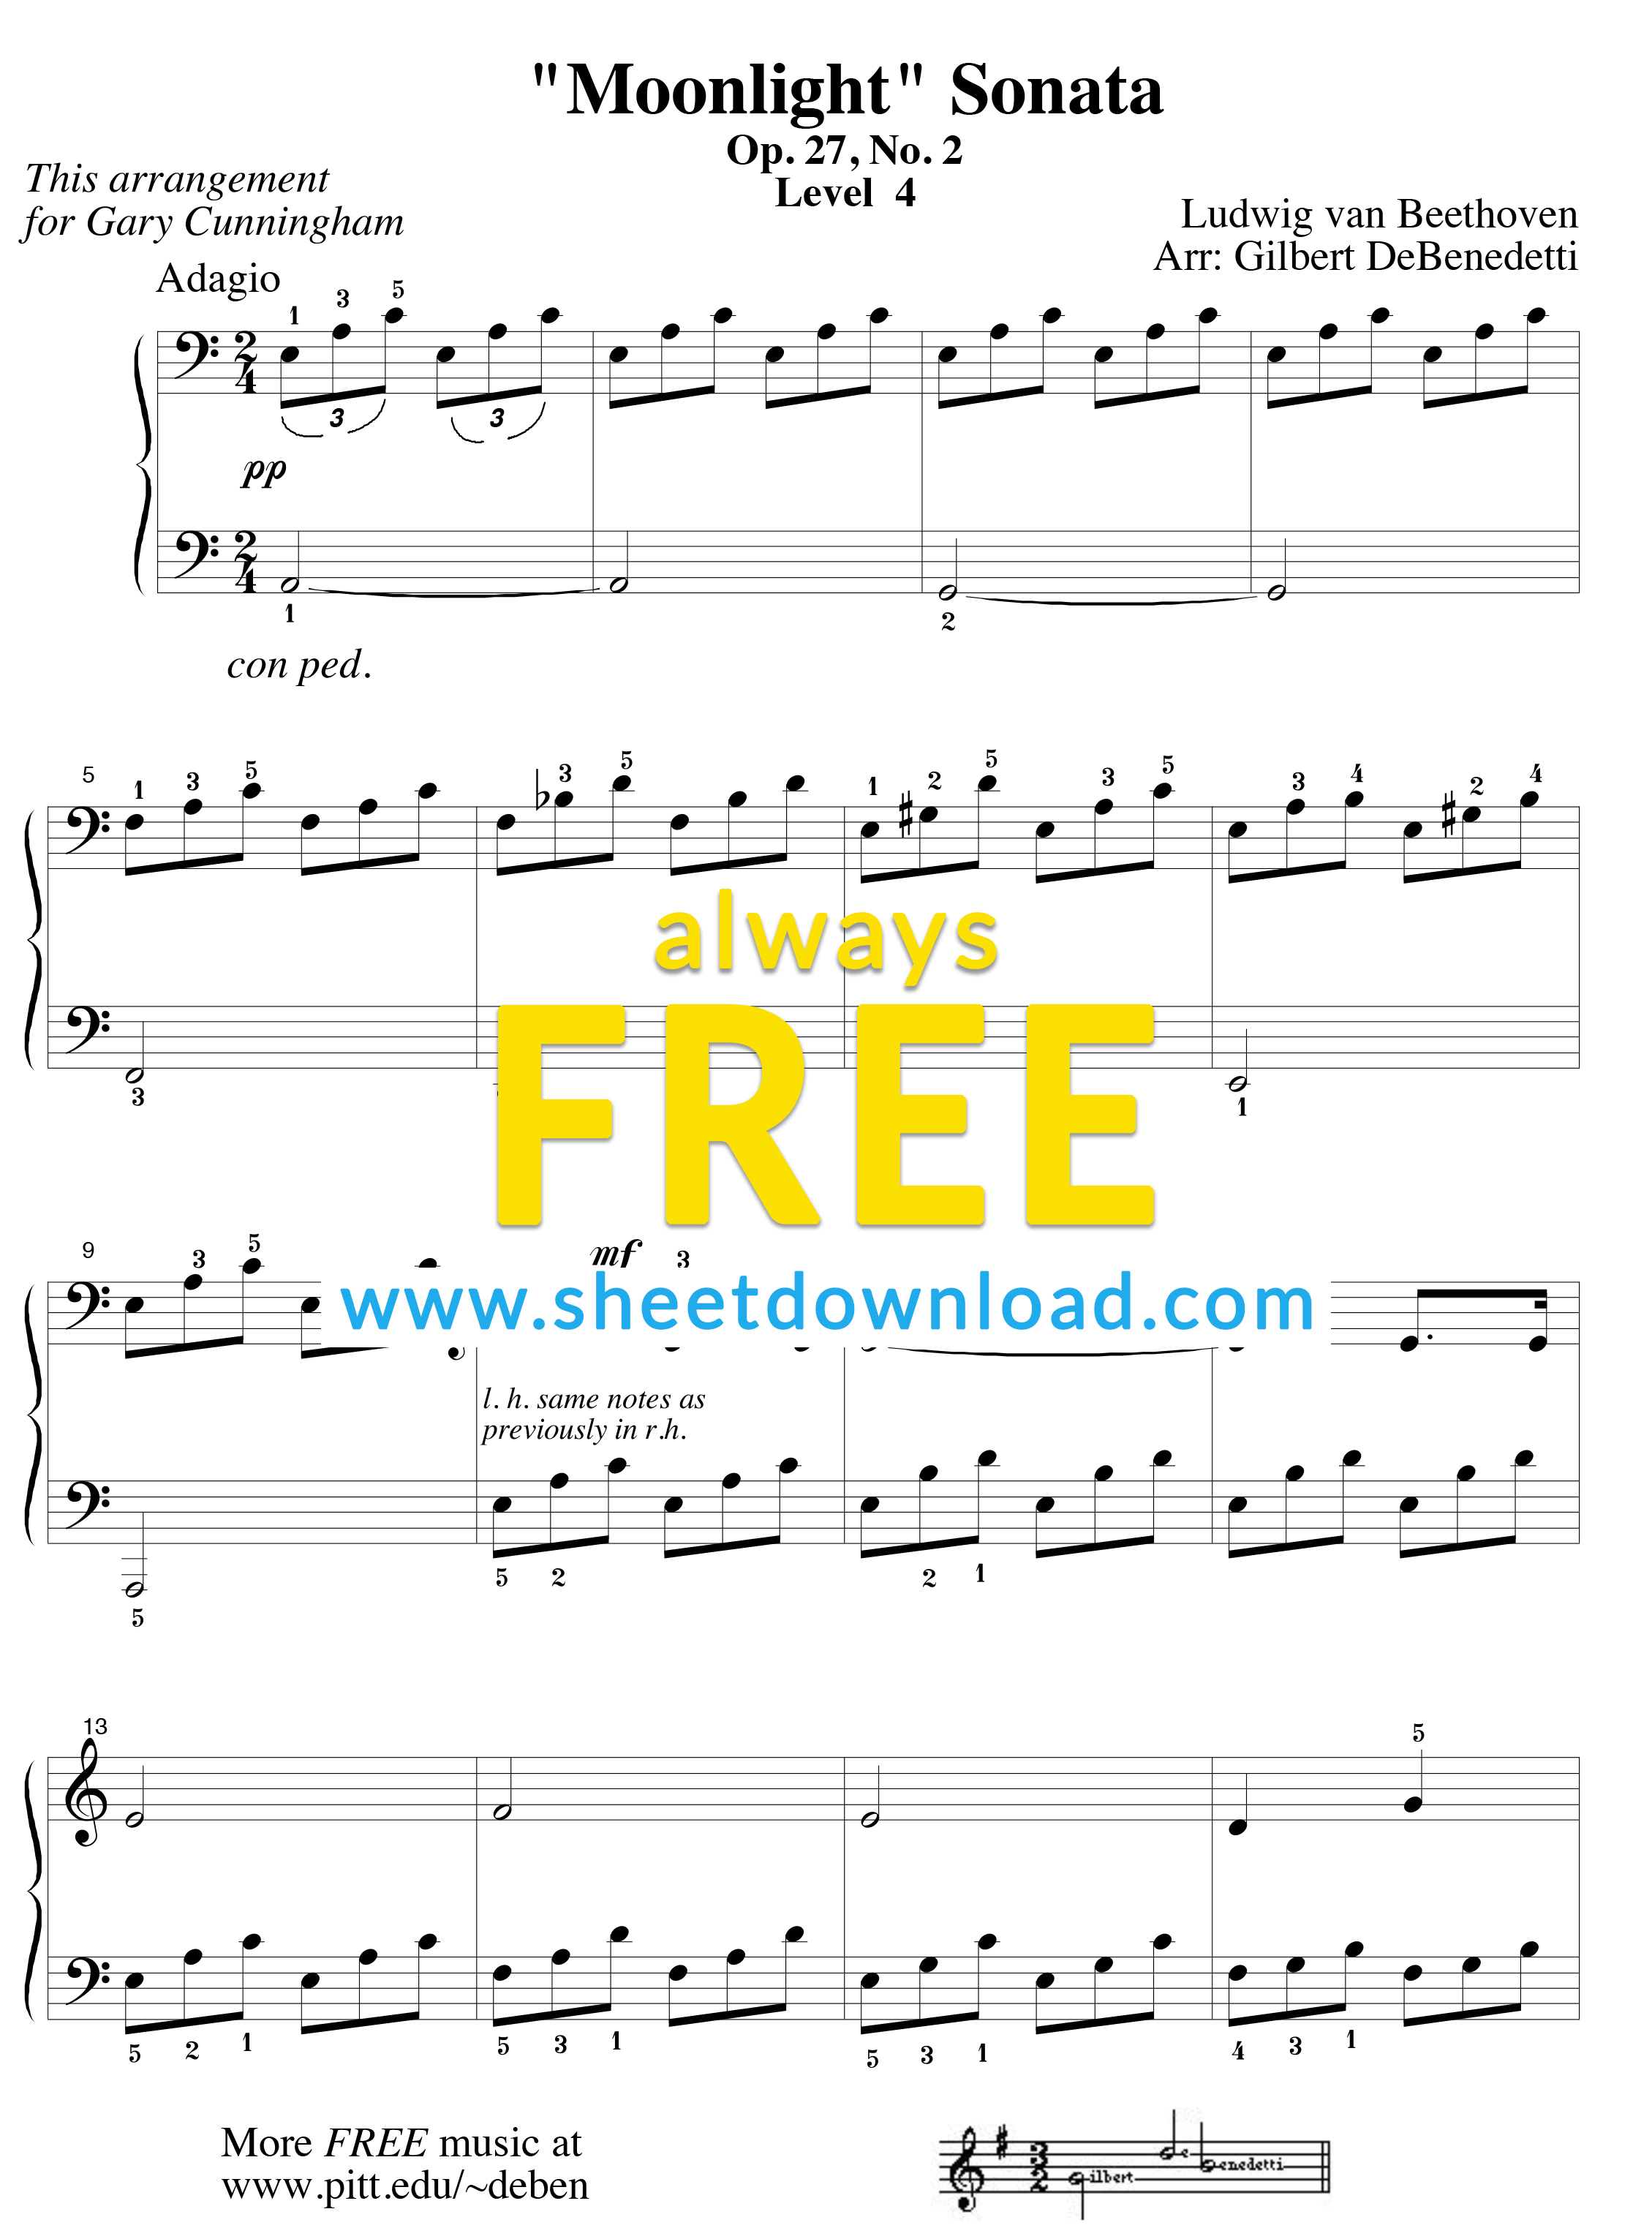 Free Piano Sheet Music To Download And Print - High Quality Pdfs - Free Printable Classical Sheet Music For Piano